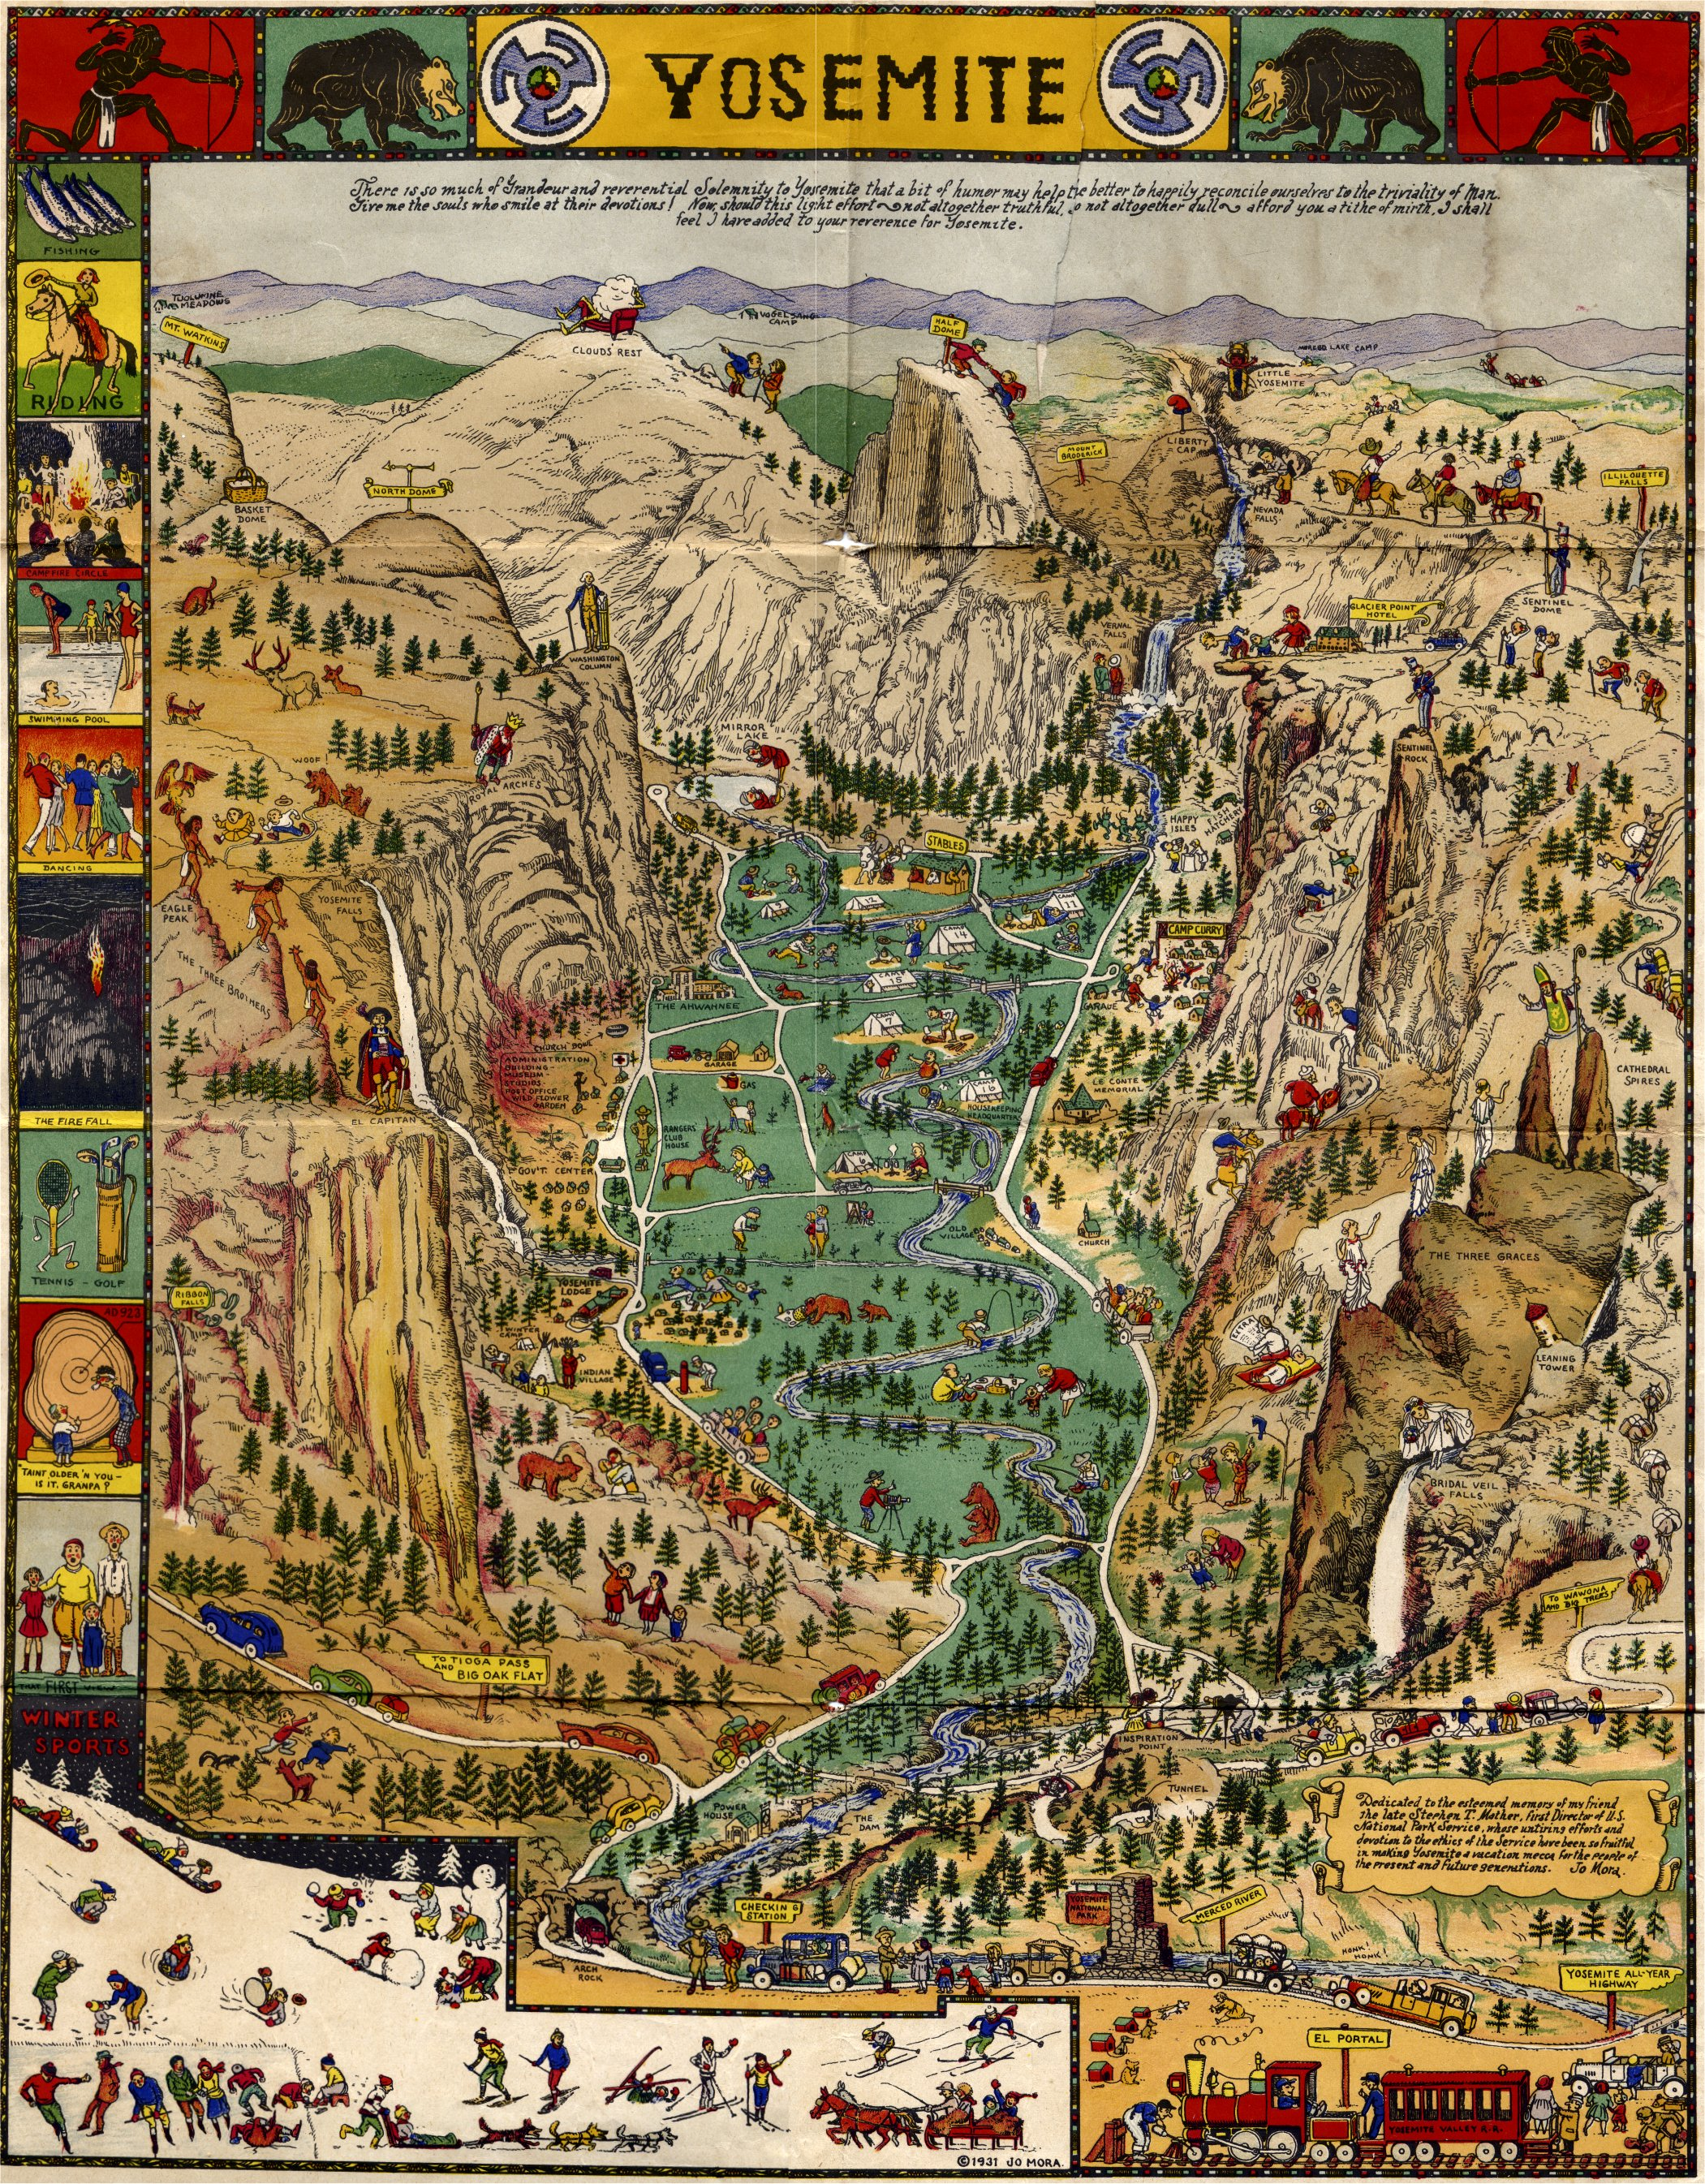 Yosemite Valley Pictorial Map By Jo Mora 1931